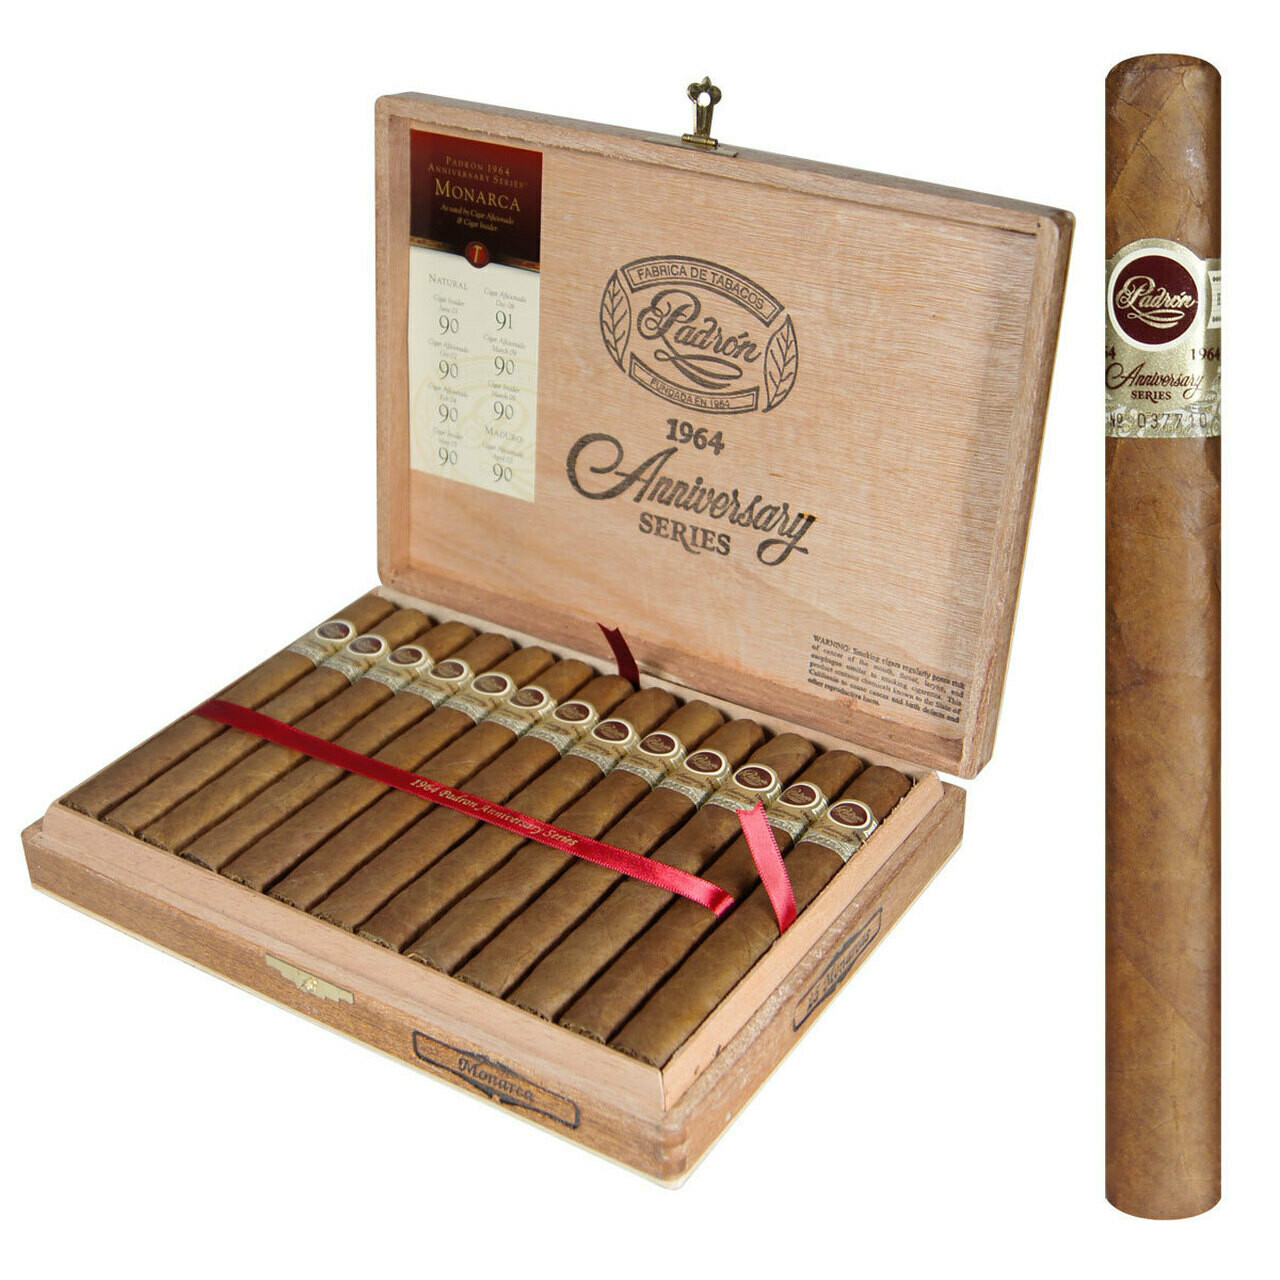 Padron 1964 Monarca Natural